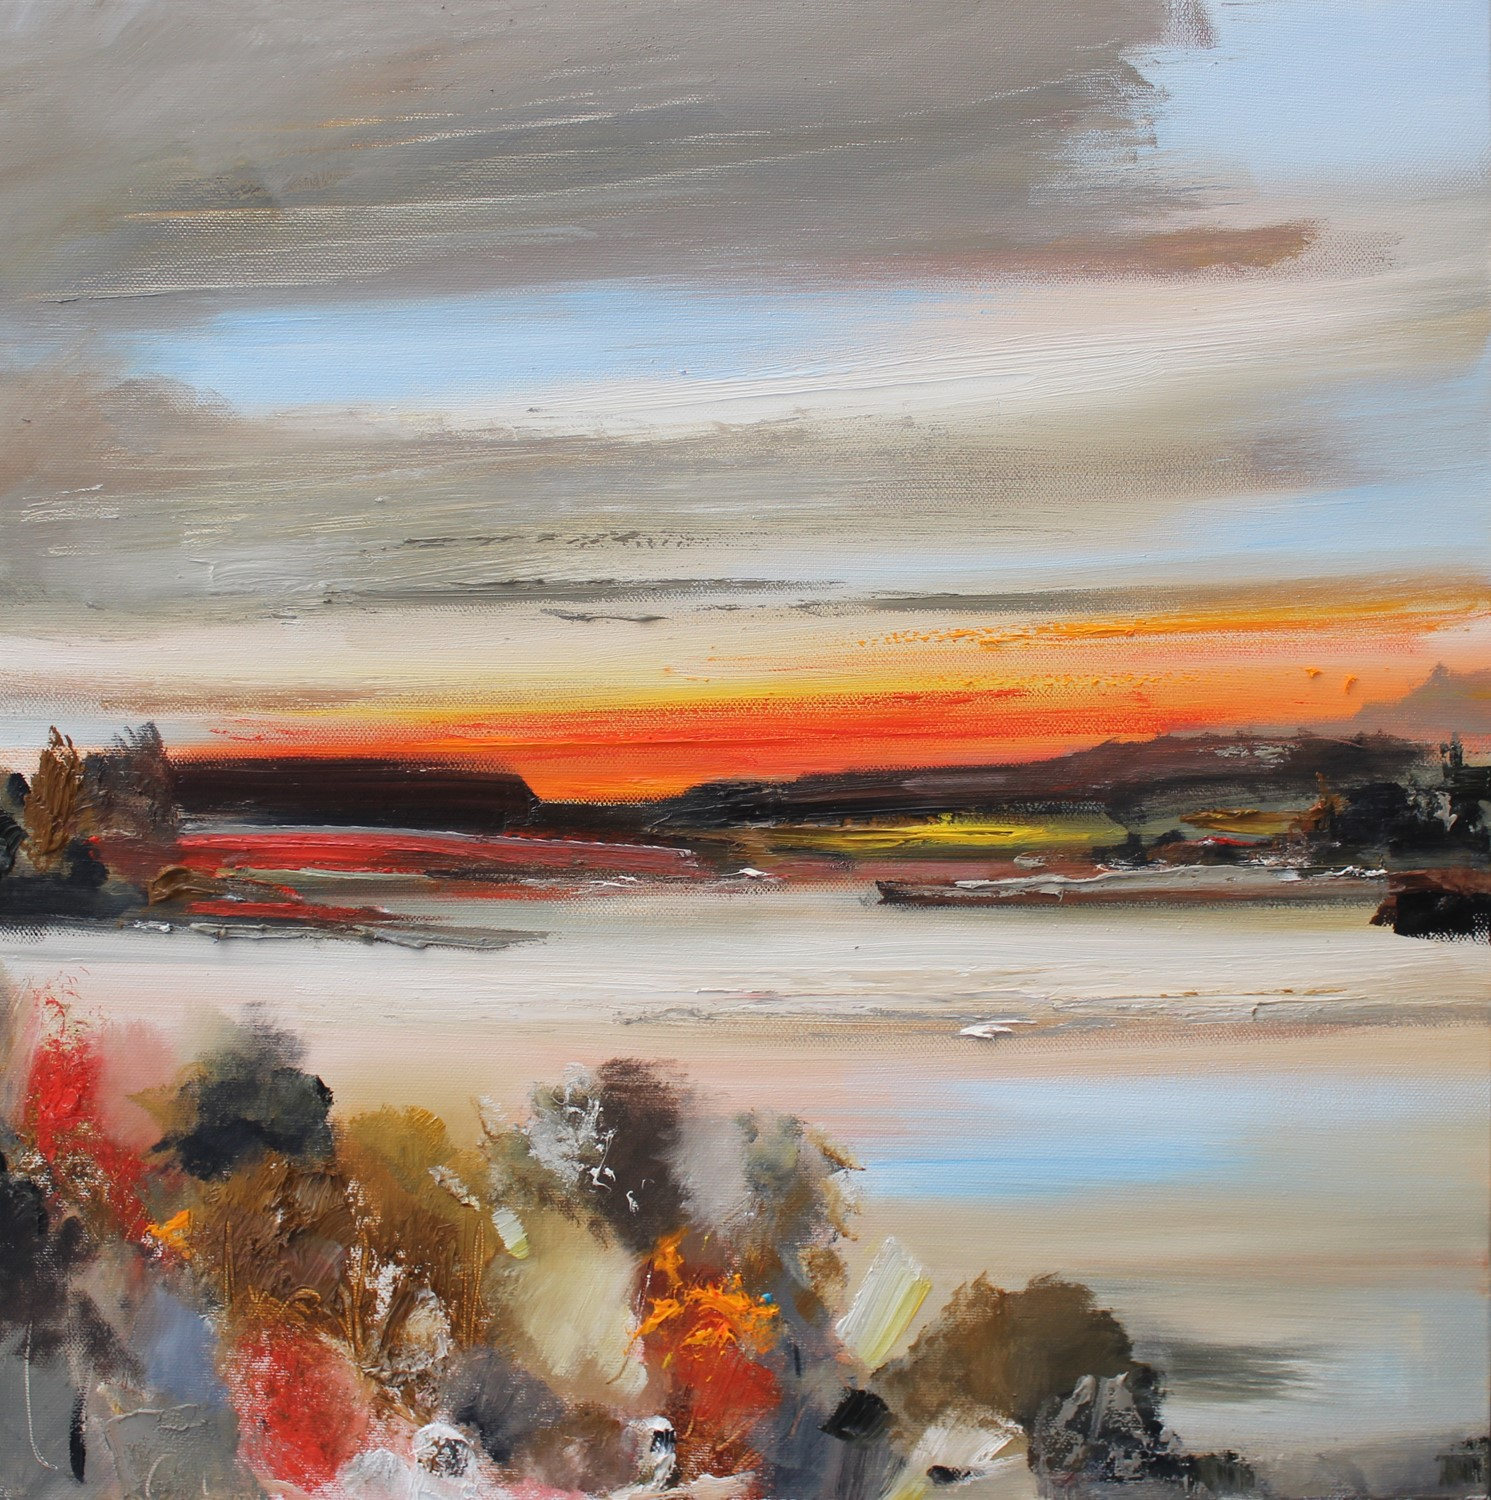 'The last moments of sunset' by artist Rosanne Barr